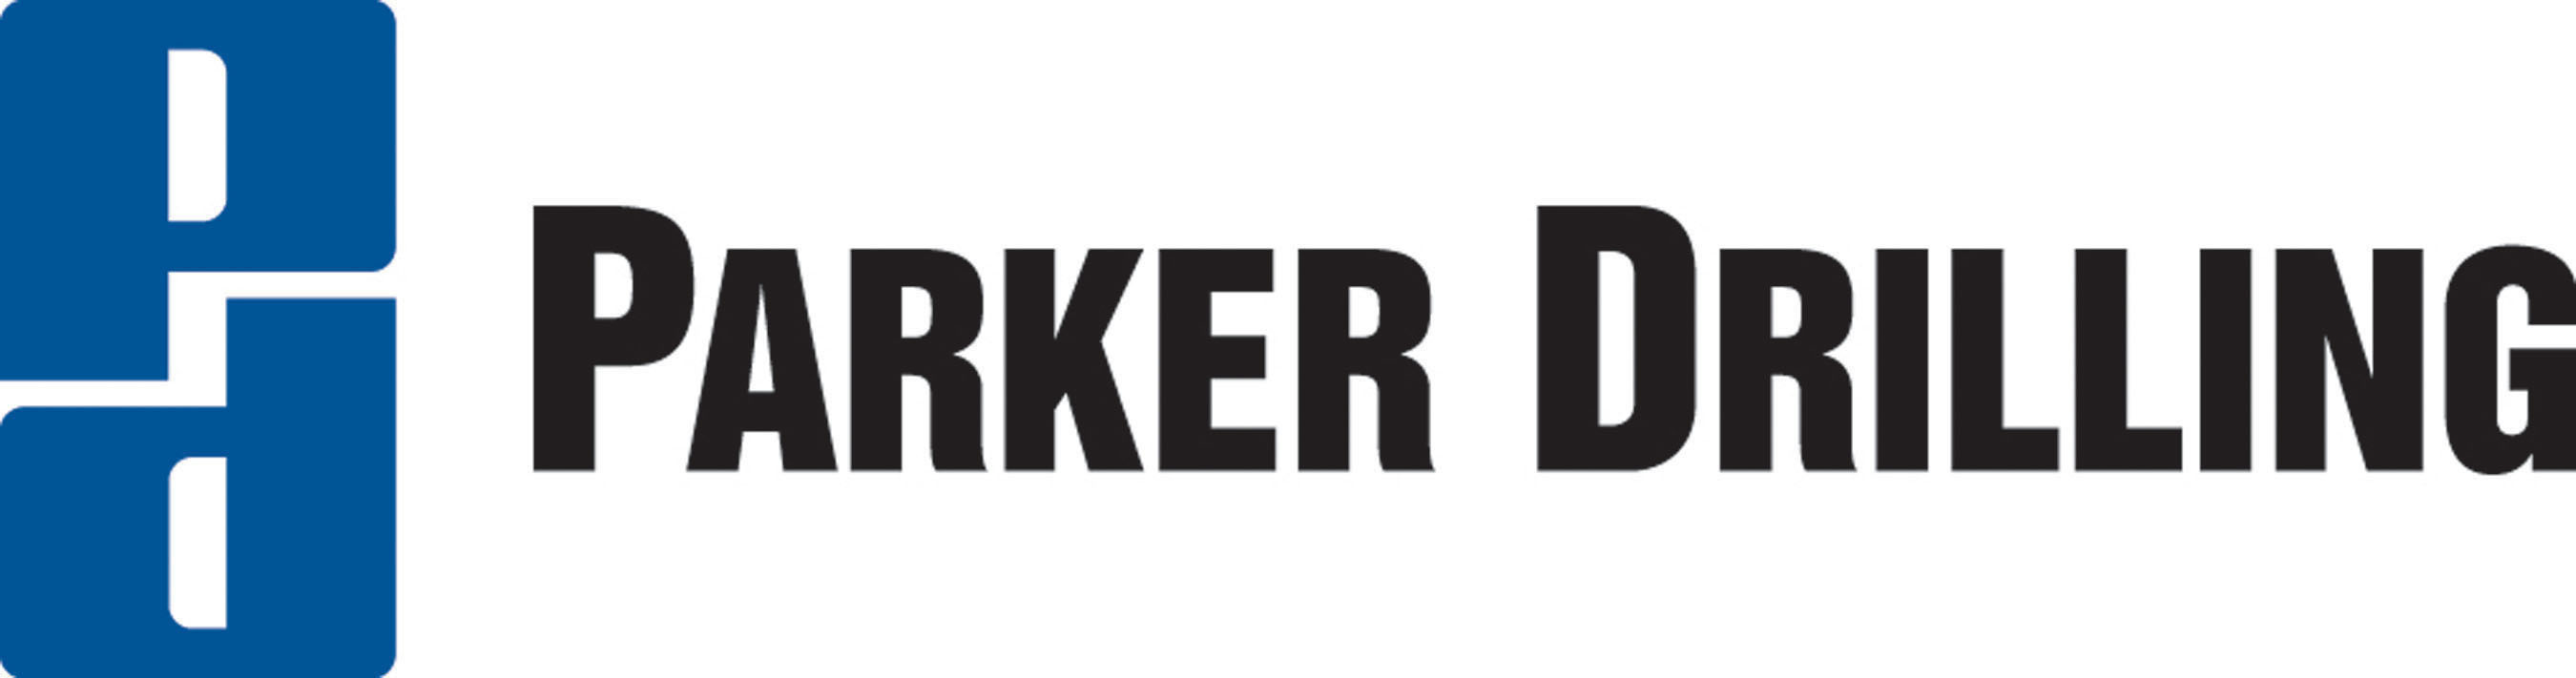 Parker Drilling Co. Logo